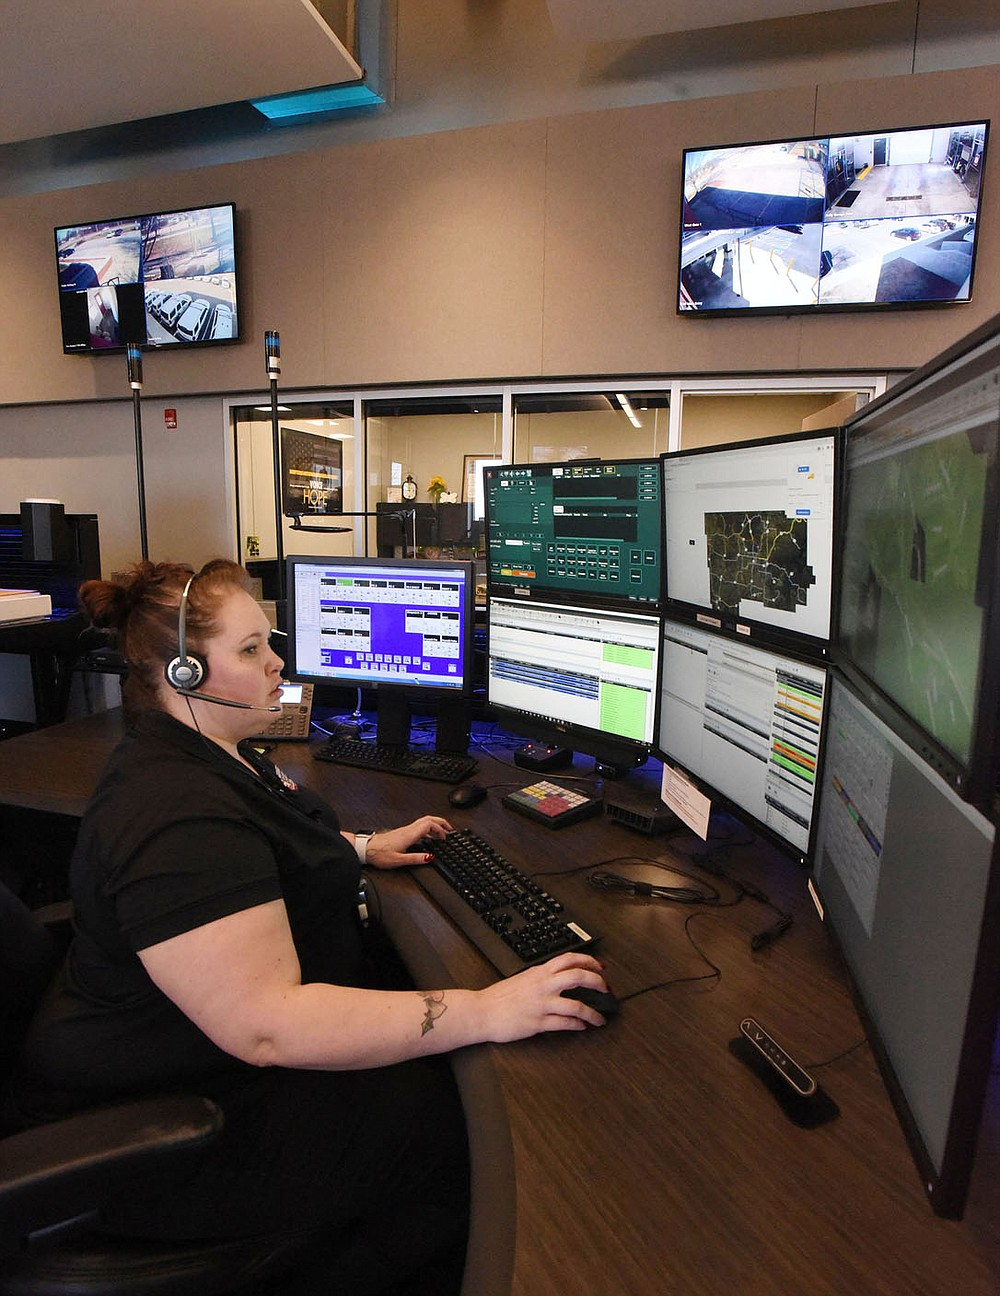 Desiree Beaver looks at information while on duty Tuesday March 2 2021 in the communications center at the Bentonville Police Department. A new radio system for the department is part of a $266 million bond issue residents will vote on on April 13. (NWA Democrat-Gazette/Flip Putthoff)